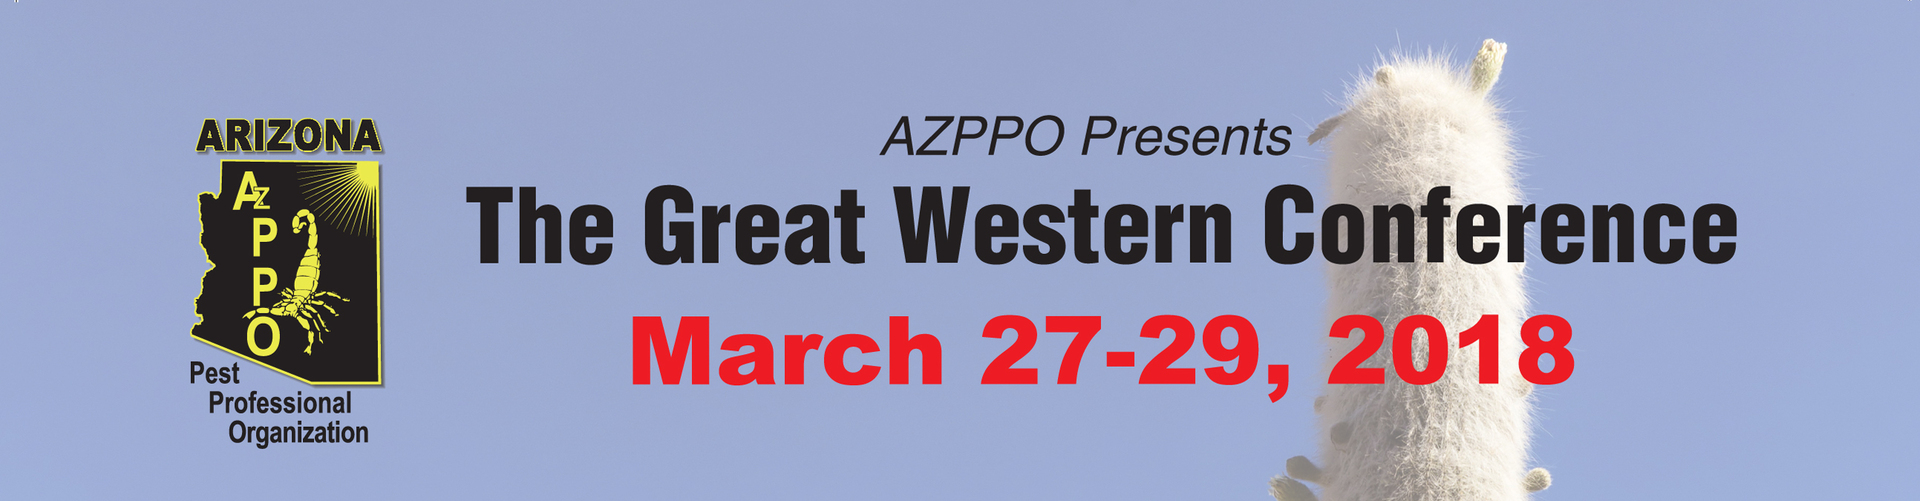 -2018 AZPPO Conference Save the Date March 27-29, 2018